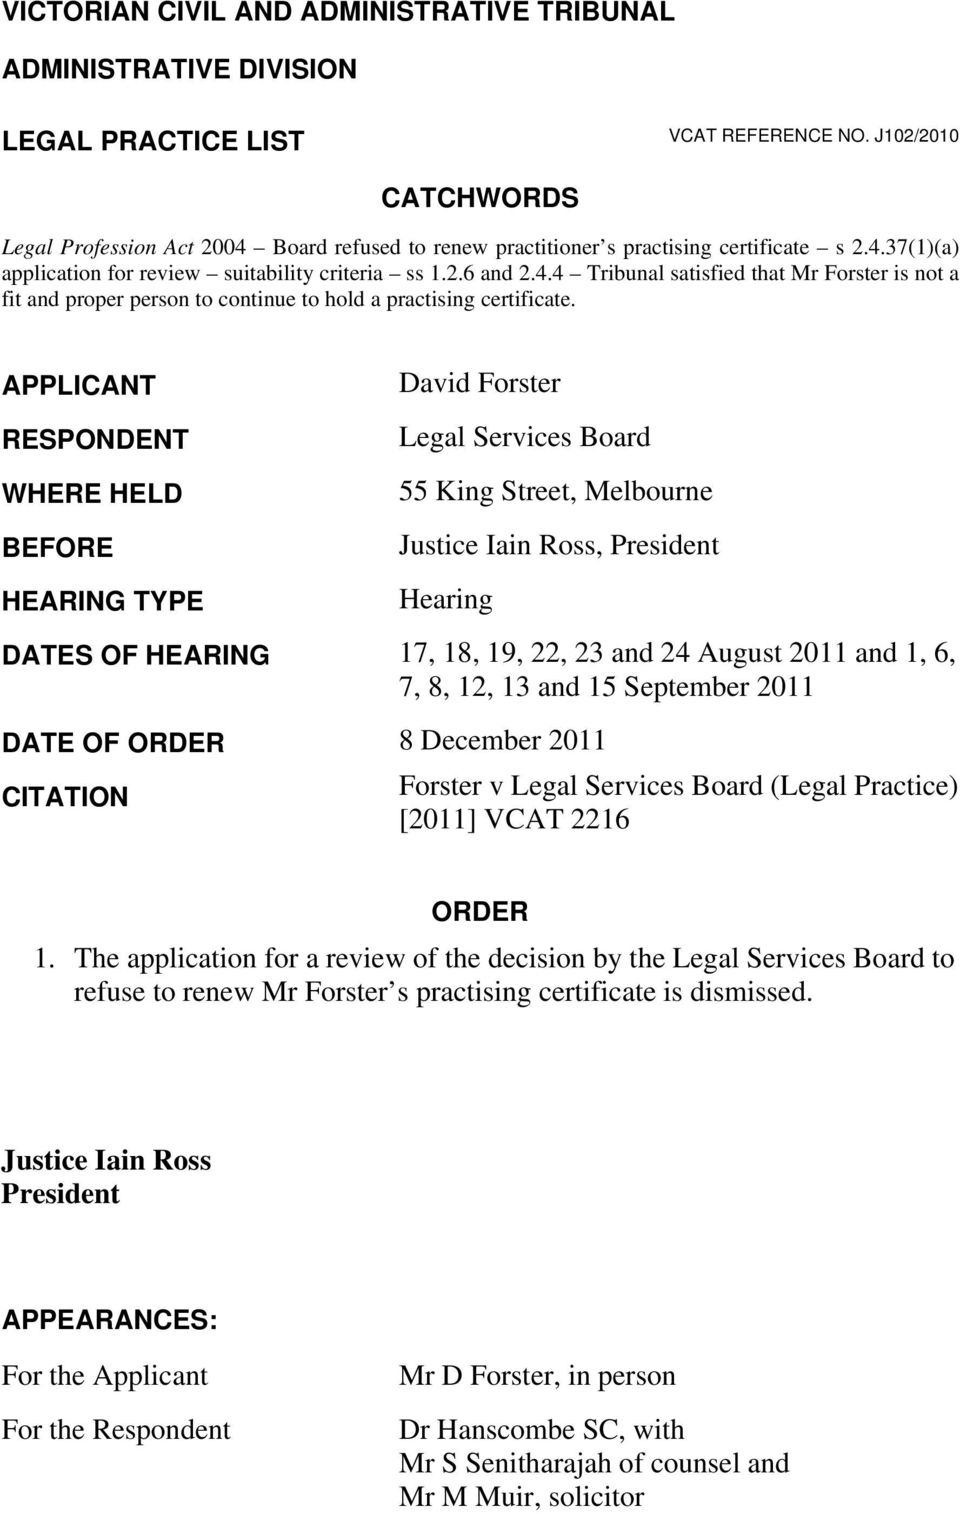 APPLICANT RESPONDENT WHERE HELD BEFORE HEARING TYPE David Forster Legal Services Board 55 King Street, Melbourne Justice Iain Ross, President Hearing DATES OF HEARING 17, 18, 19, 22, 23 and 24 August